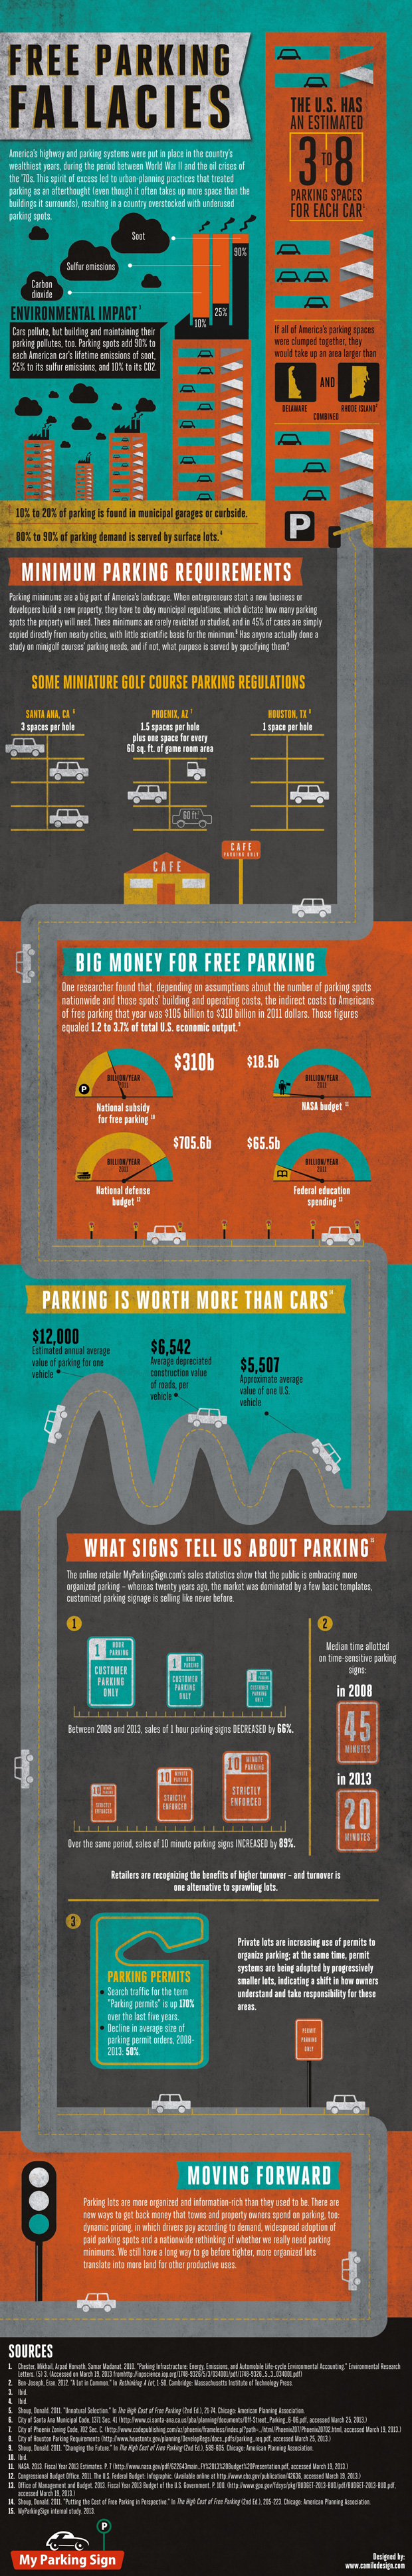 infographic-free-parking-fallacies-620